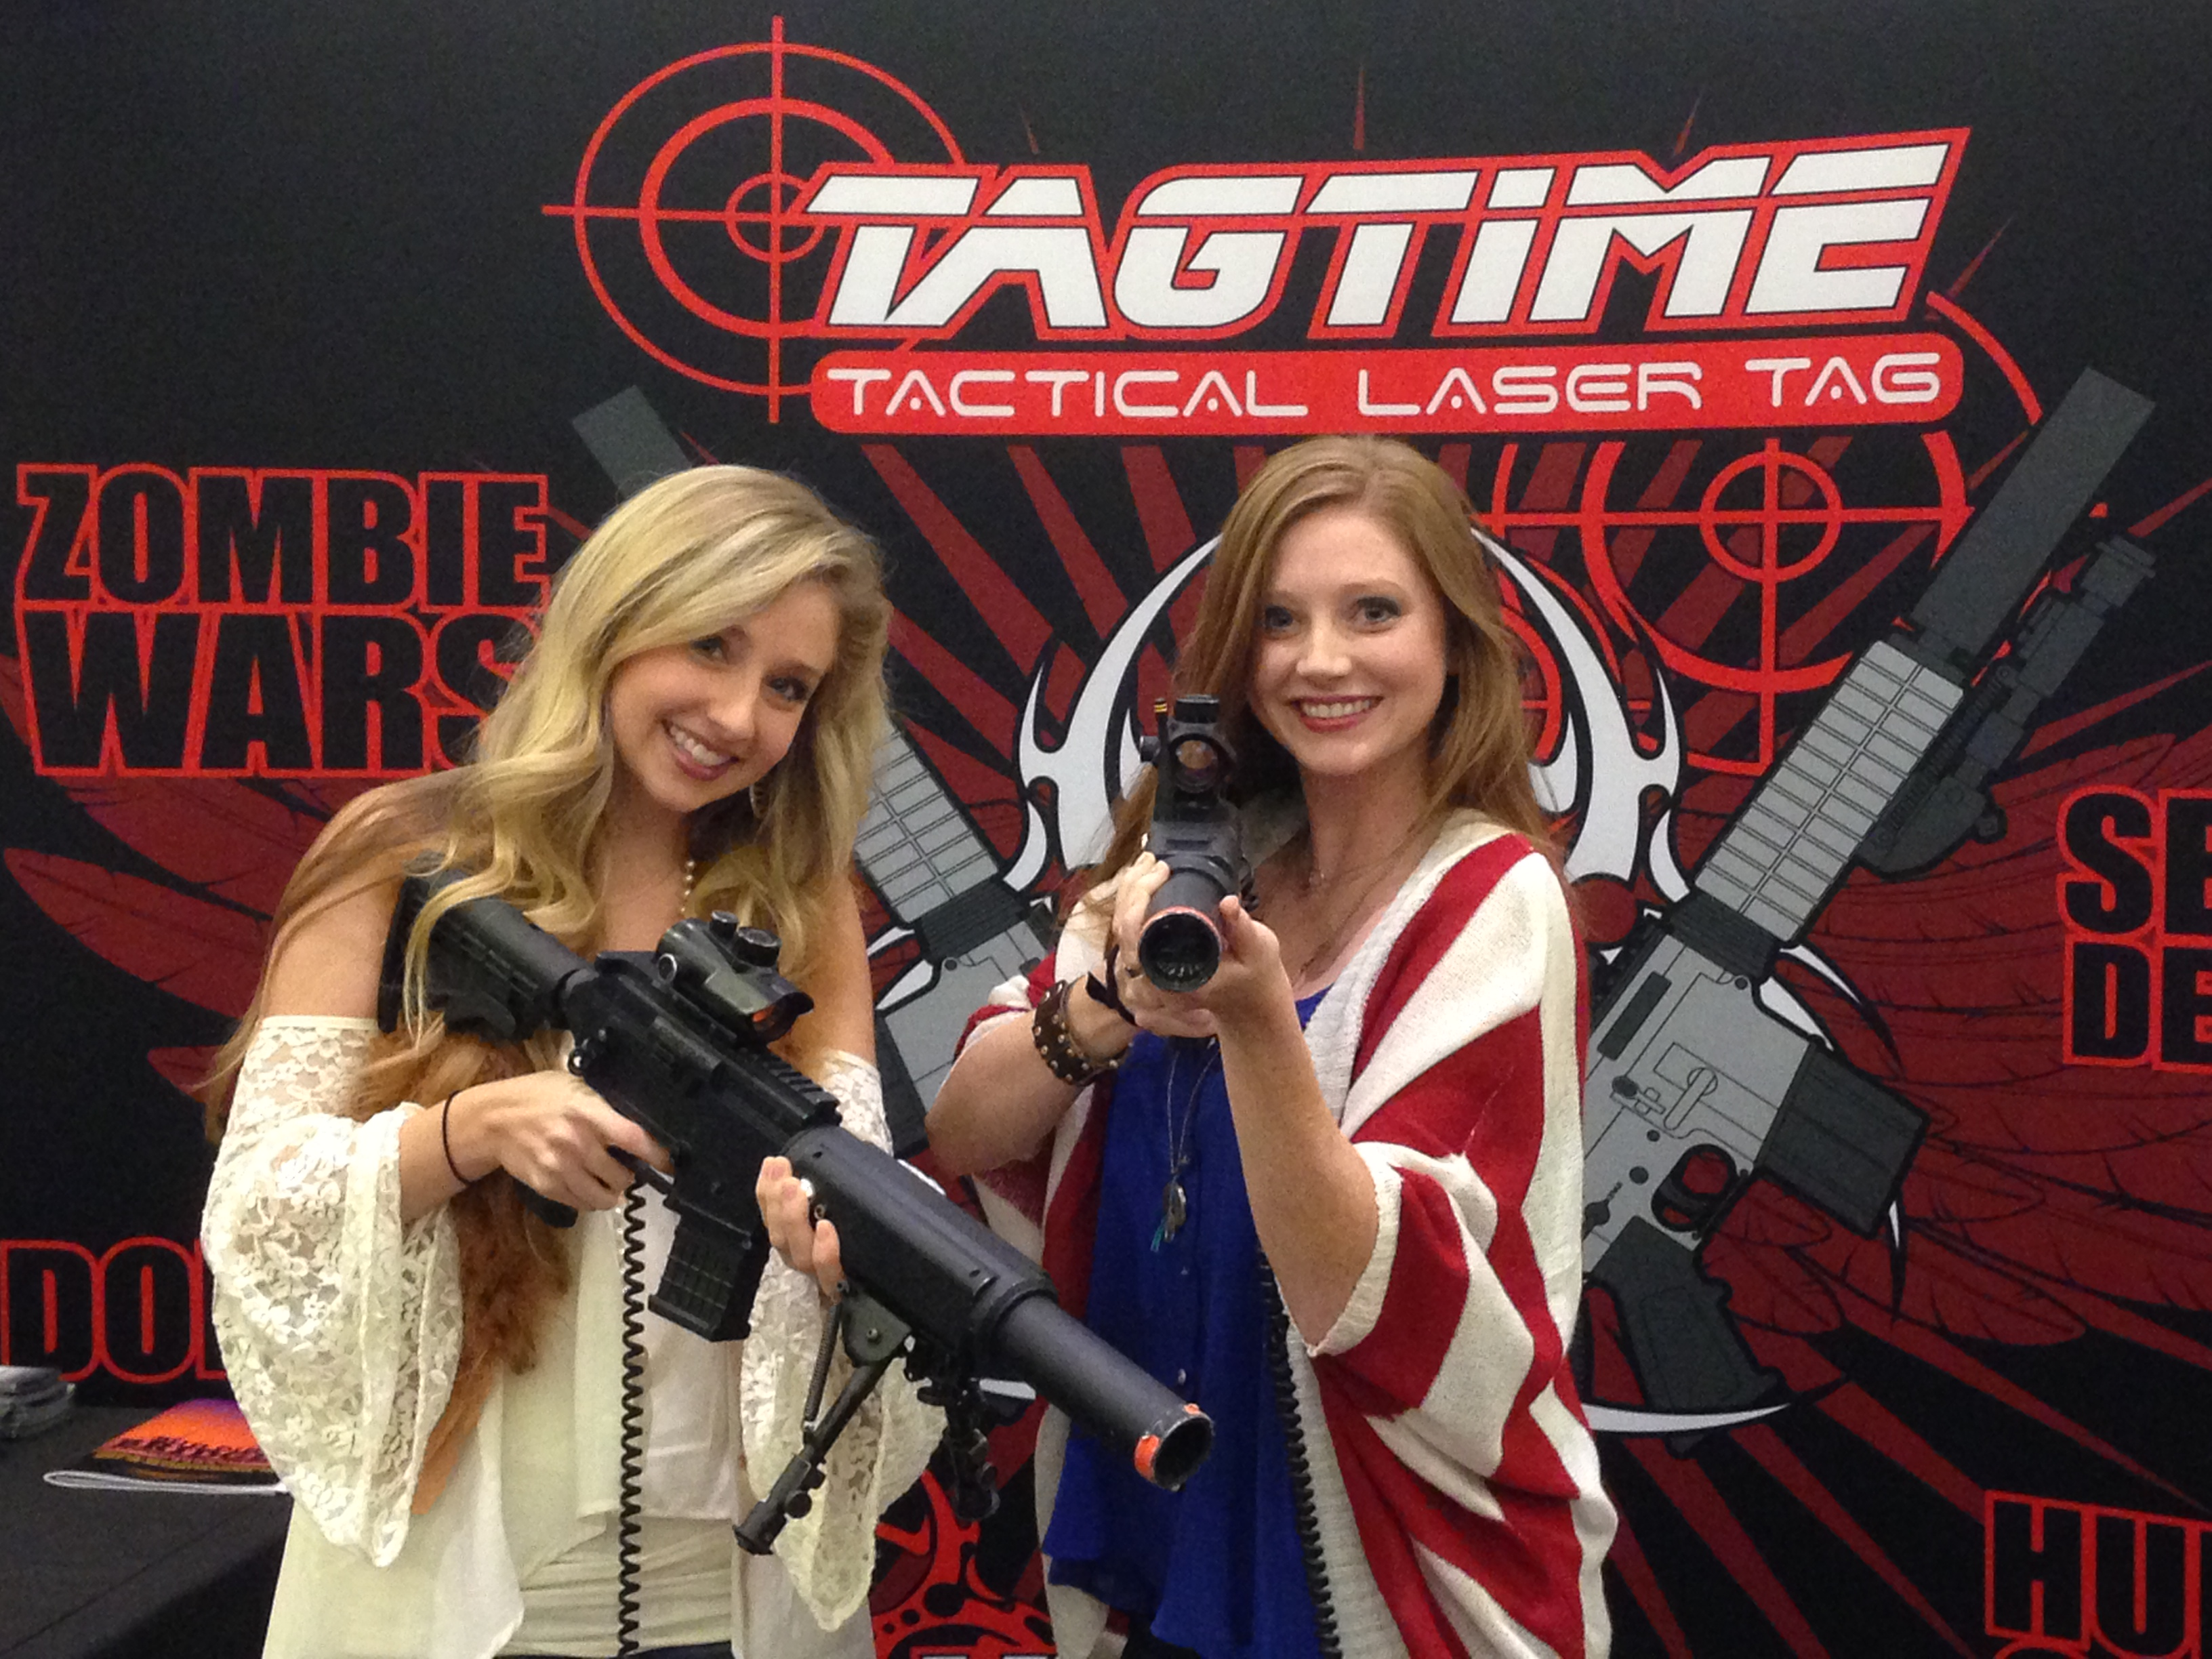 Tagtime Laser Tag Taggers